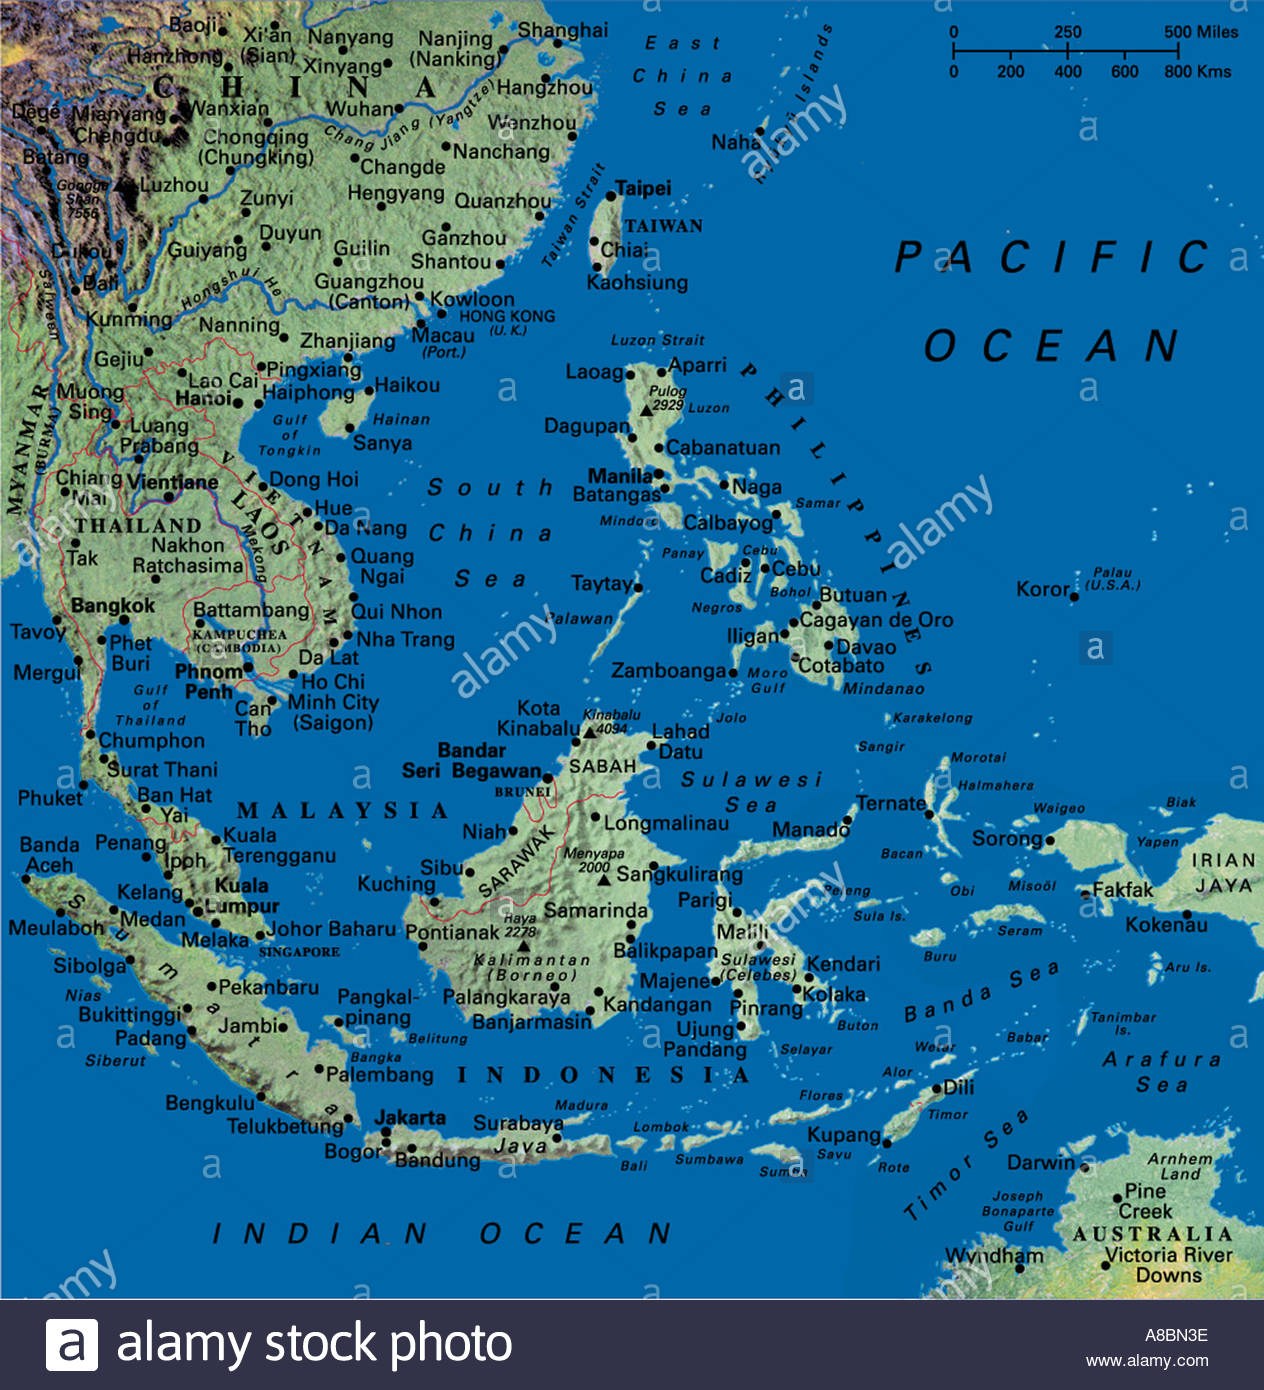 Map maps asia indonesia stock photo 3934525 alamy map maps asia indonesia gumiabroncs Choice Image